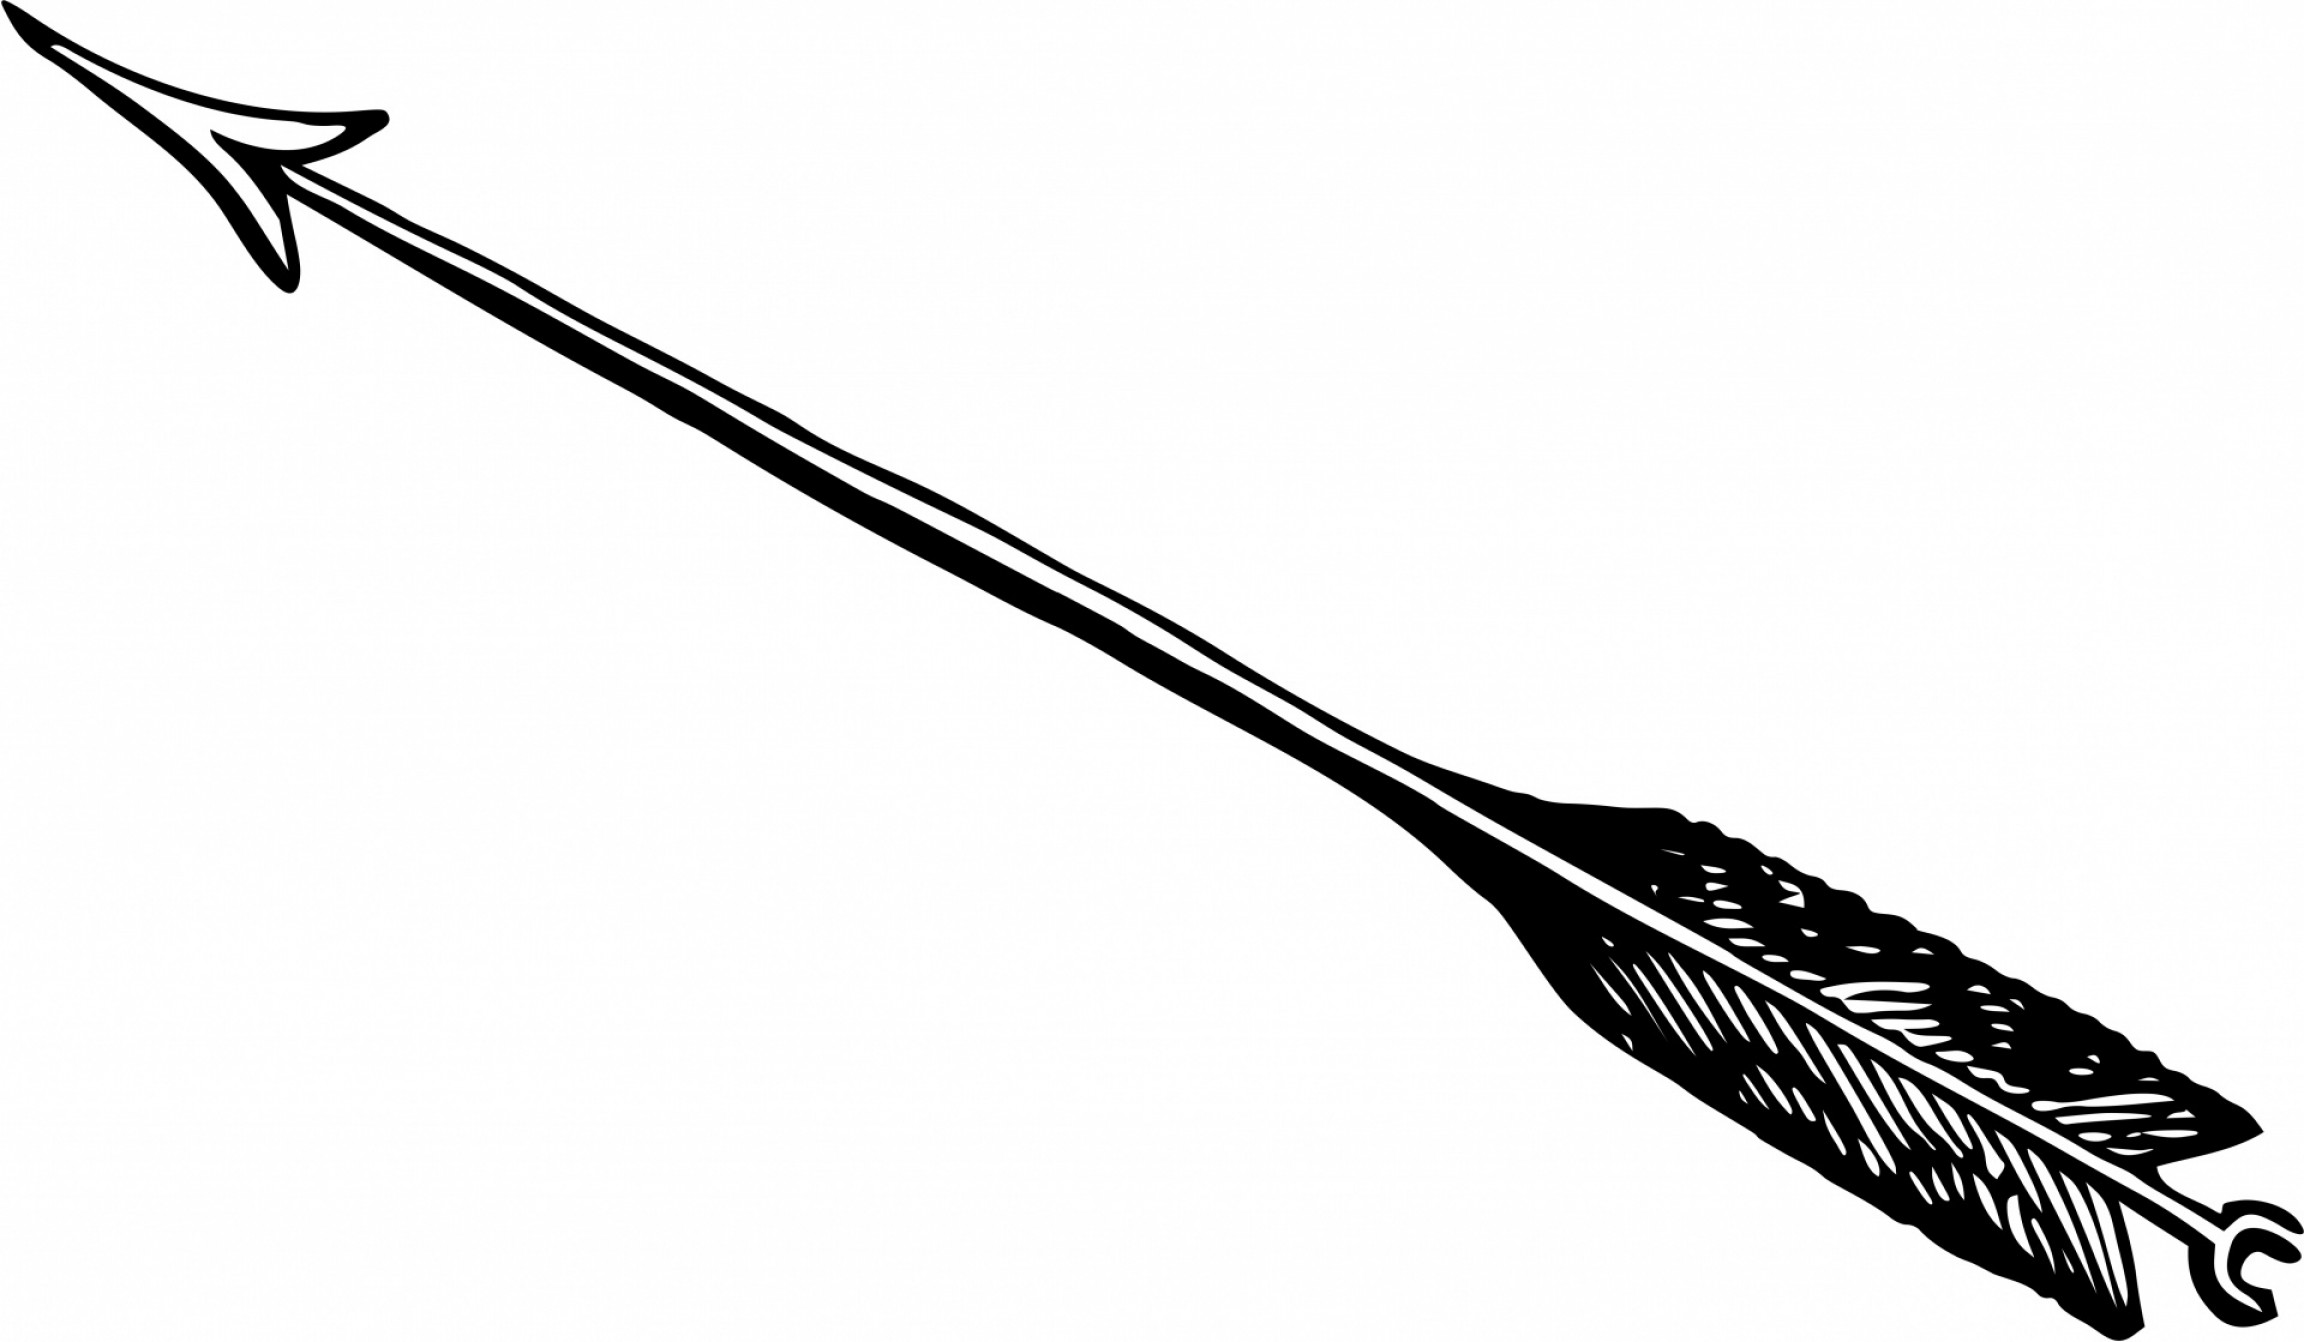 Bow And Arrow Clipart   Free download on ClipArtMag